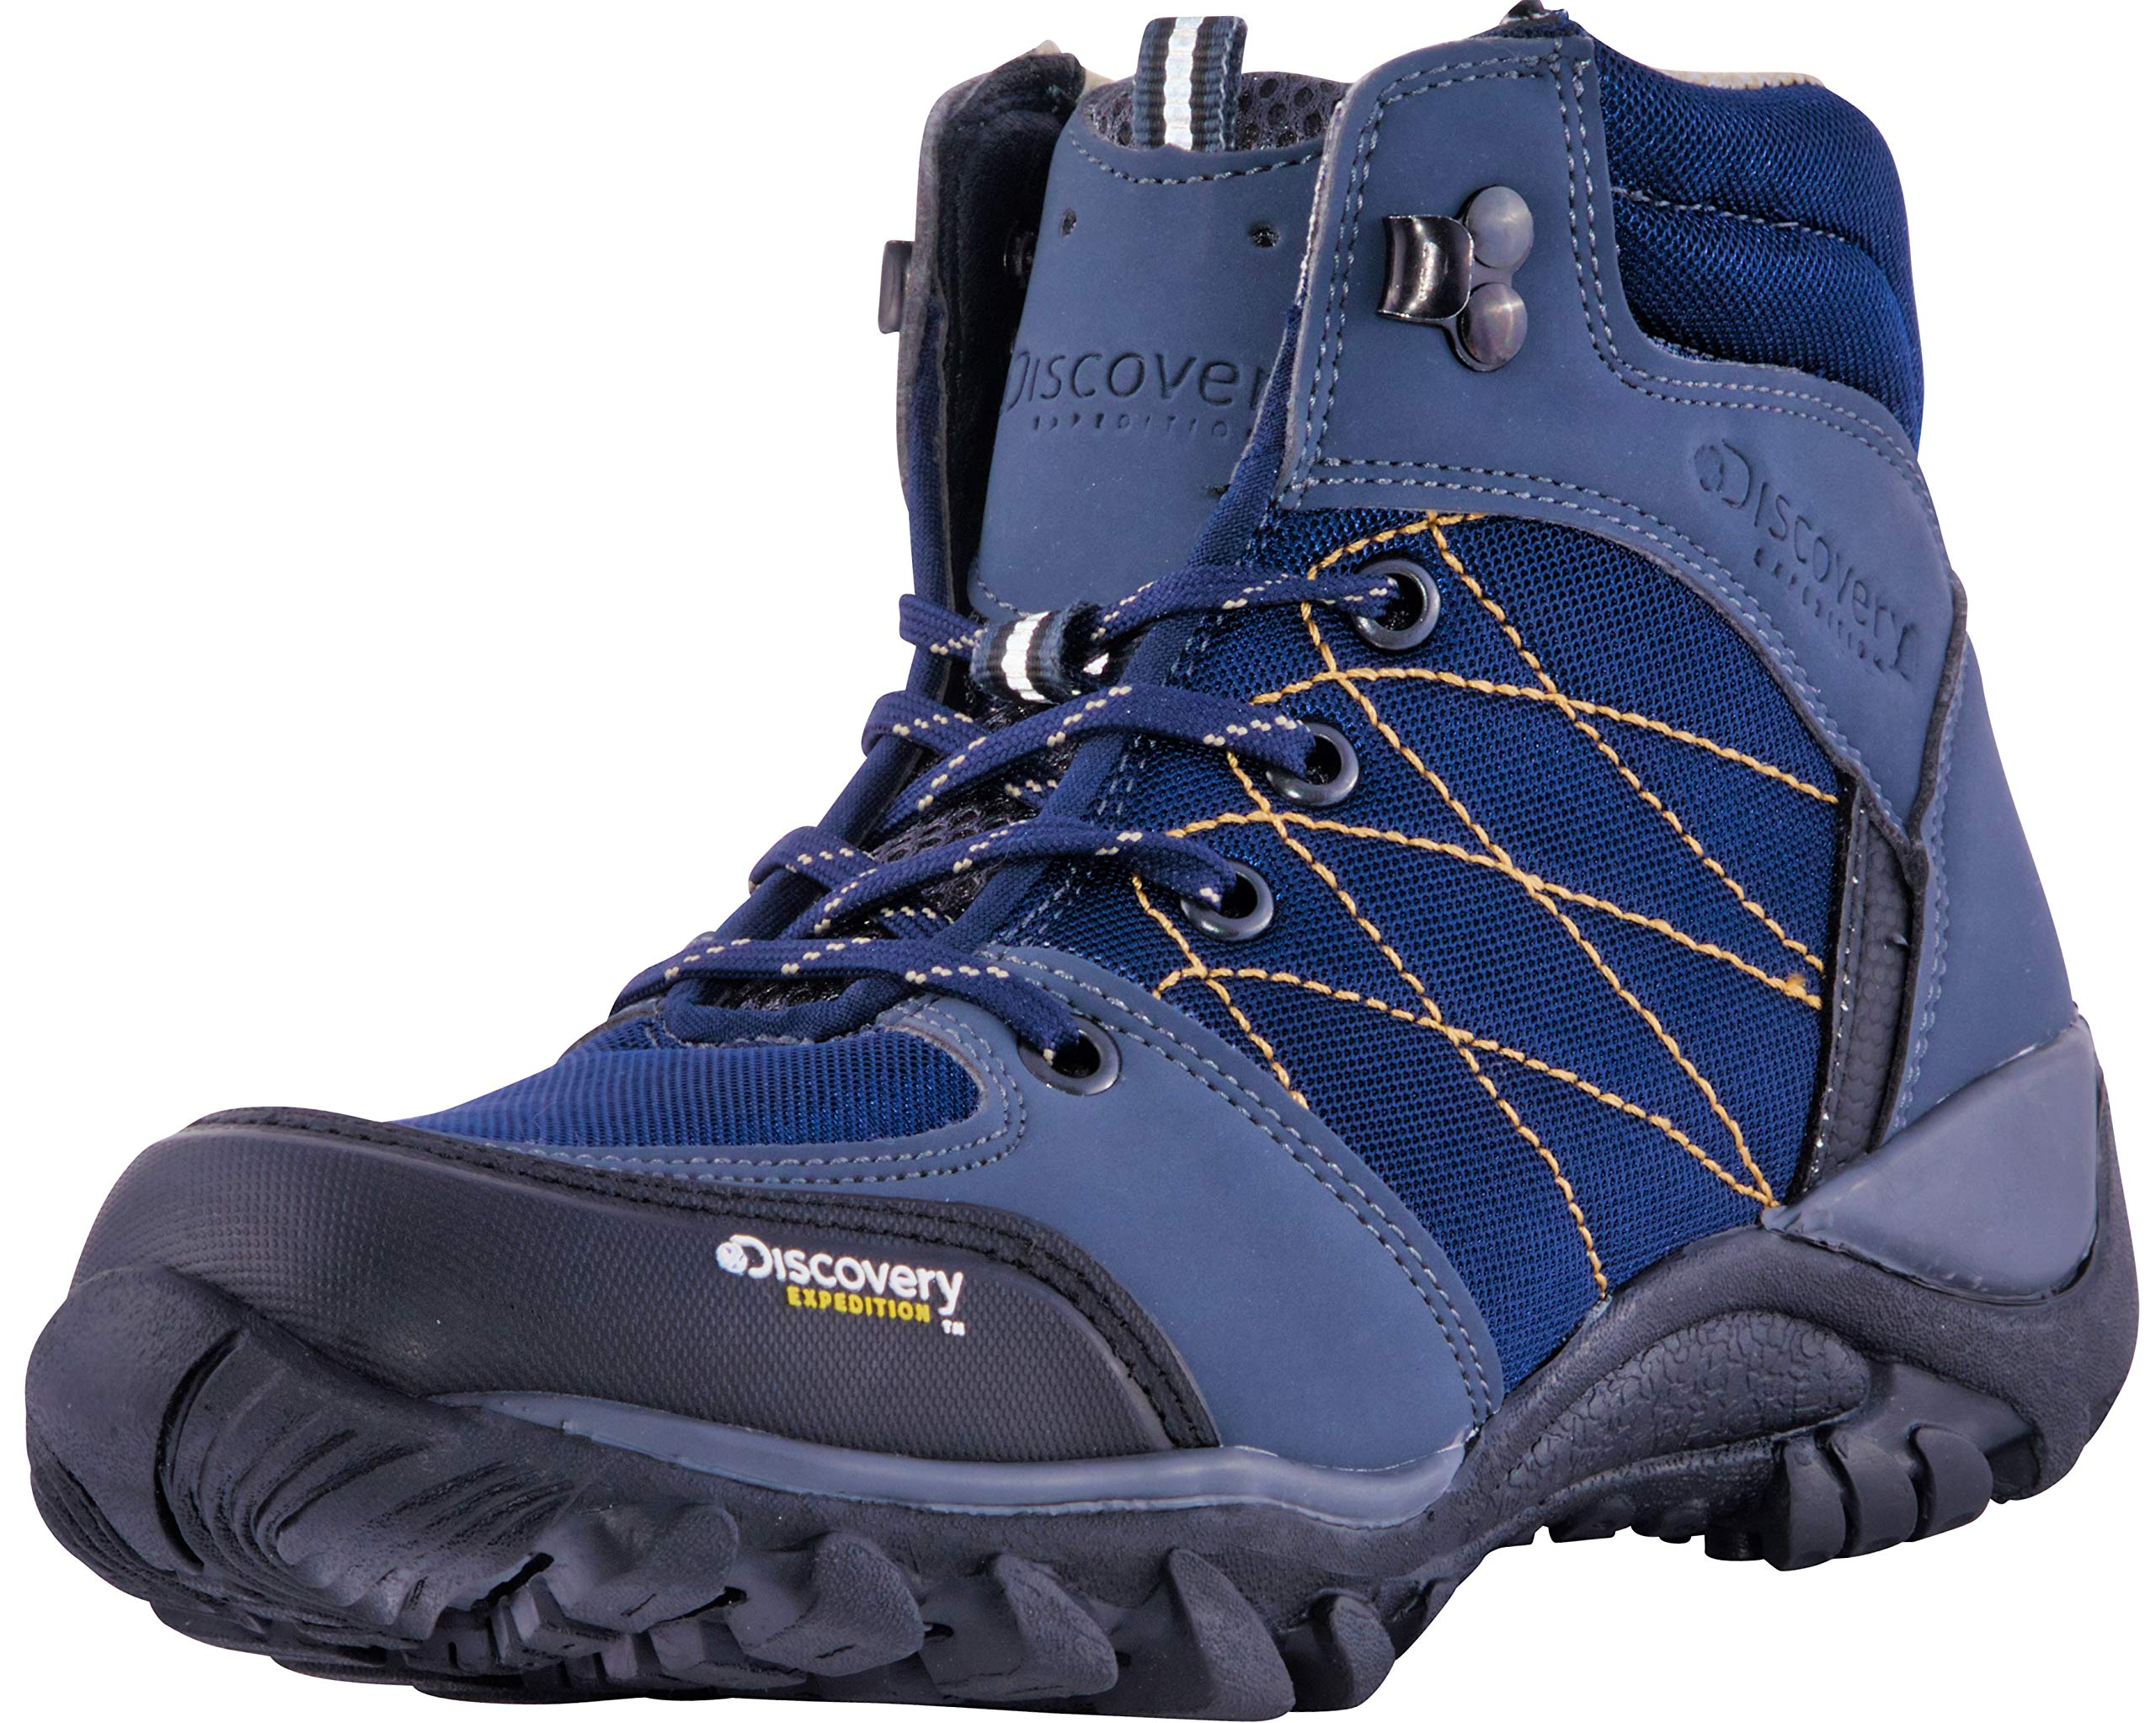 Discovery EXPEDITION Women's Rugged Outdoor Mid Hiking Backpacking Boot (9, Blue) by Discovery EXPEDITION